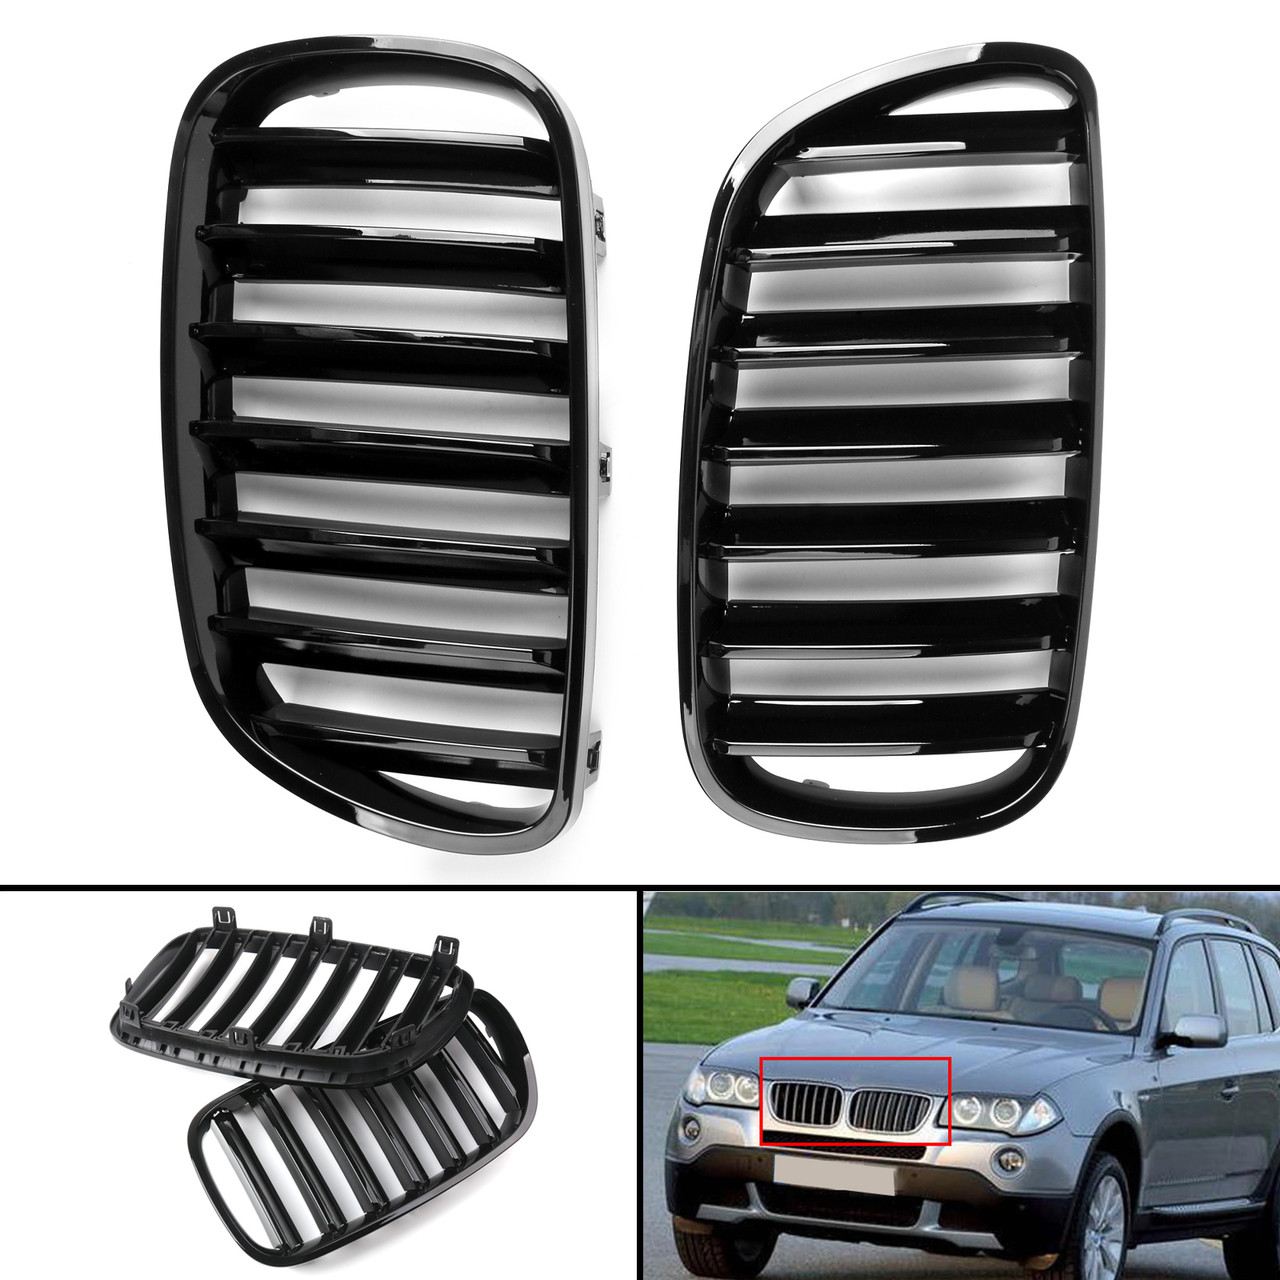 For BMW E83 X3 LCI Facelift //////M-Color Gloss Black Front Kidney Grille 2007-2010